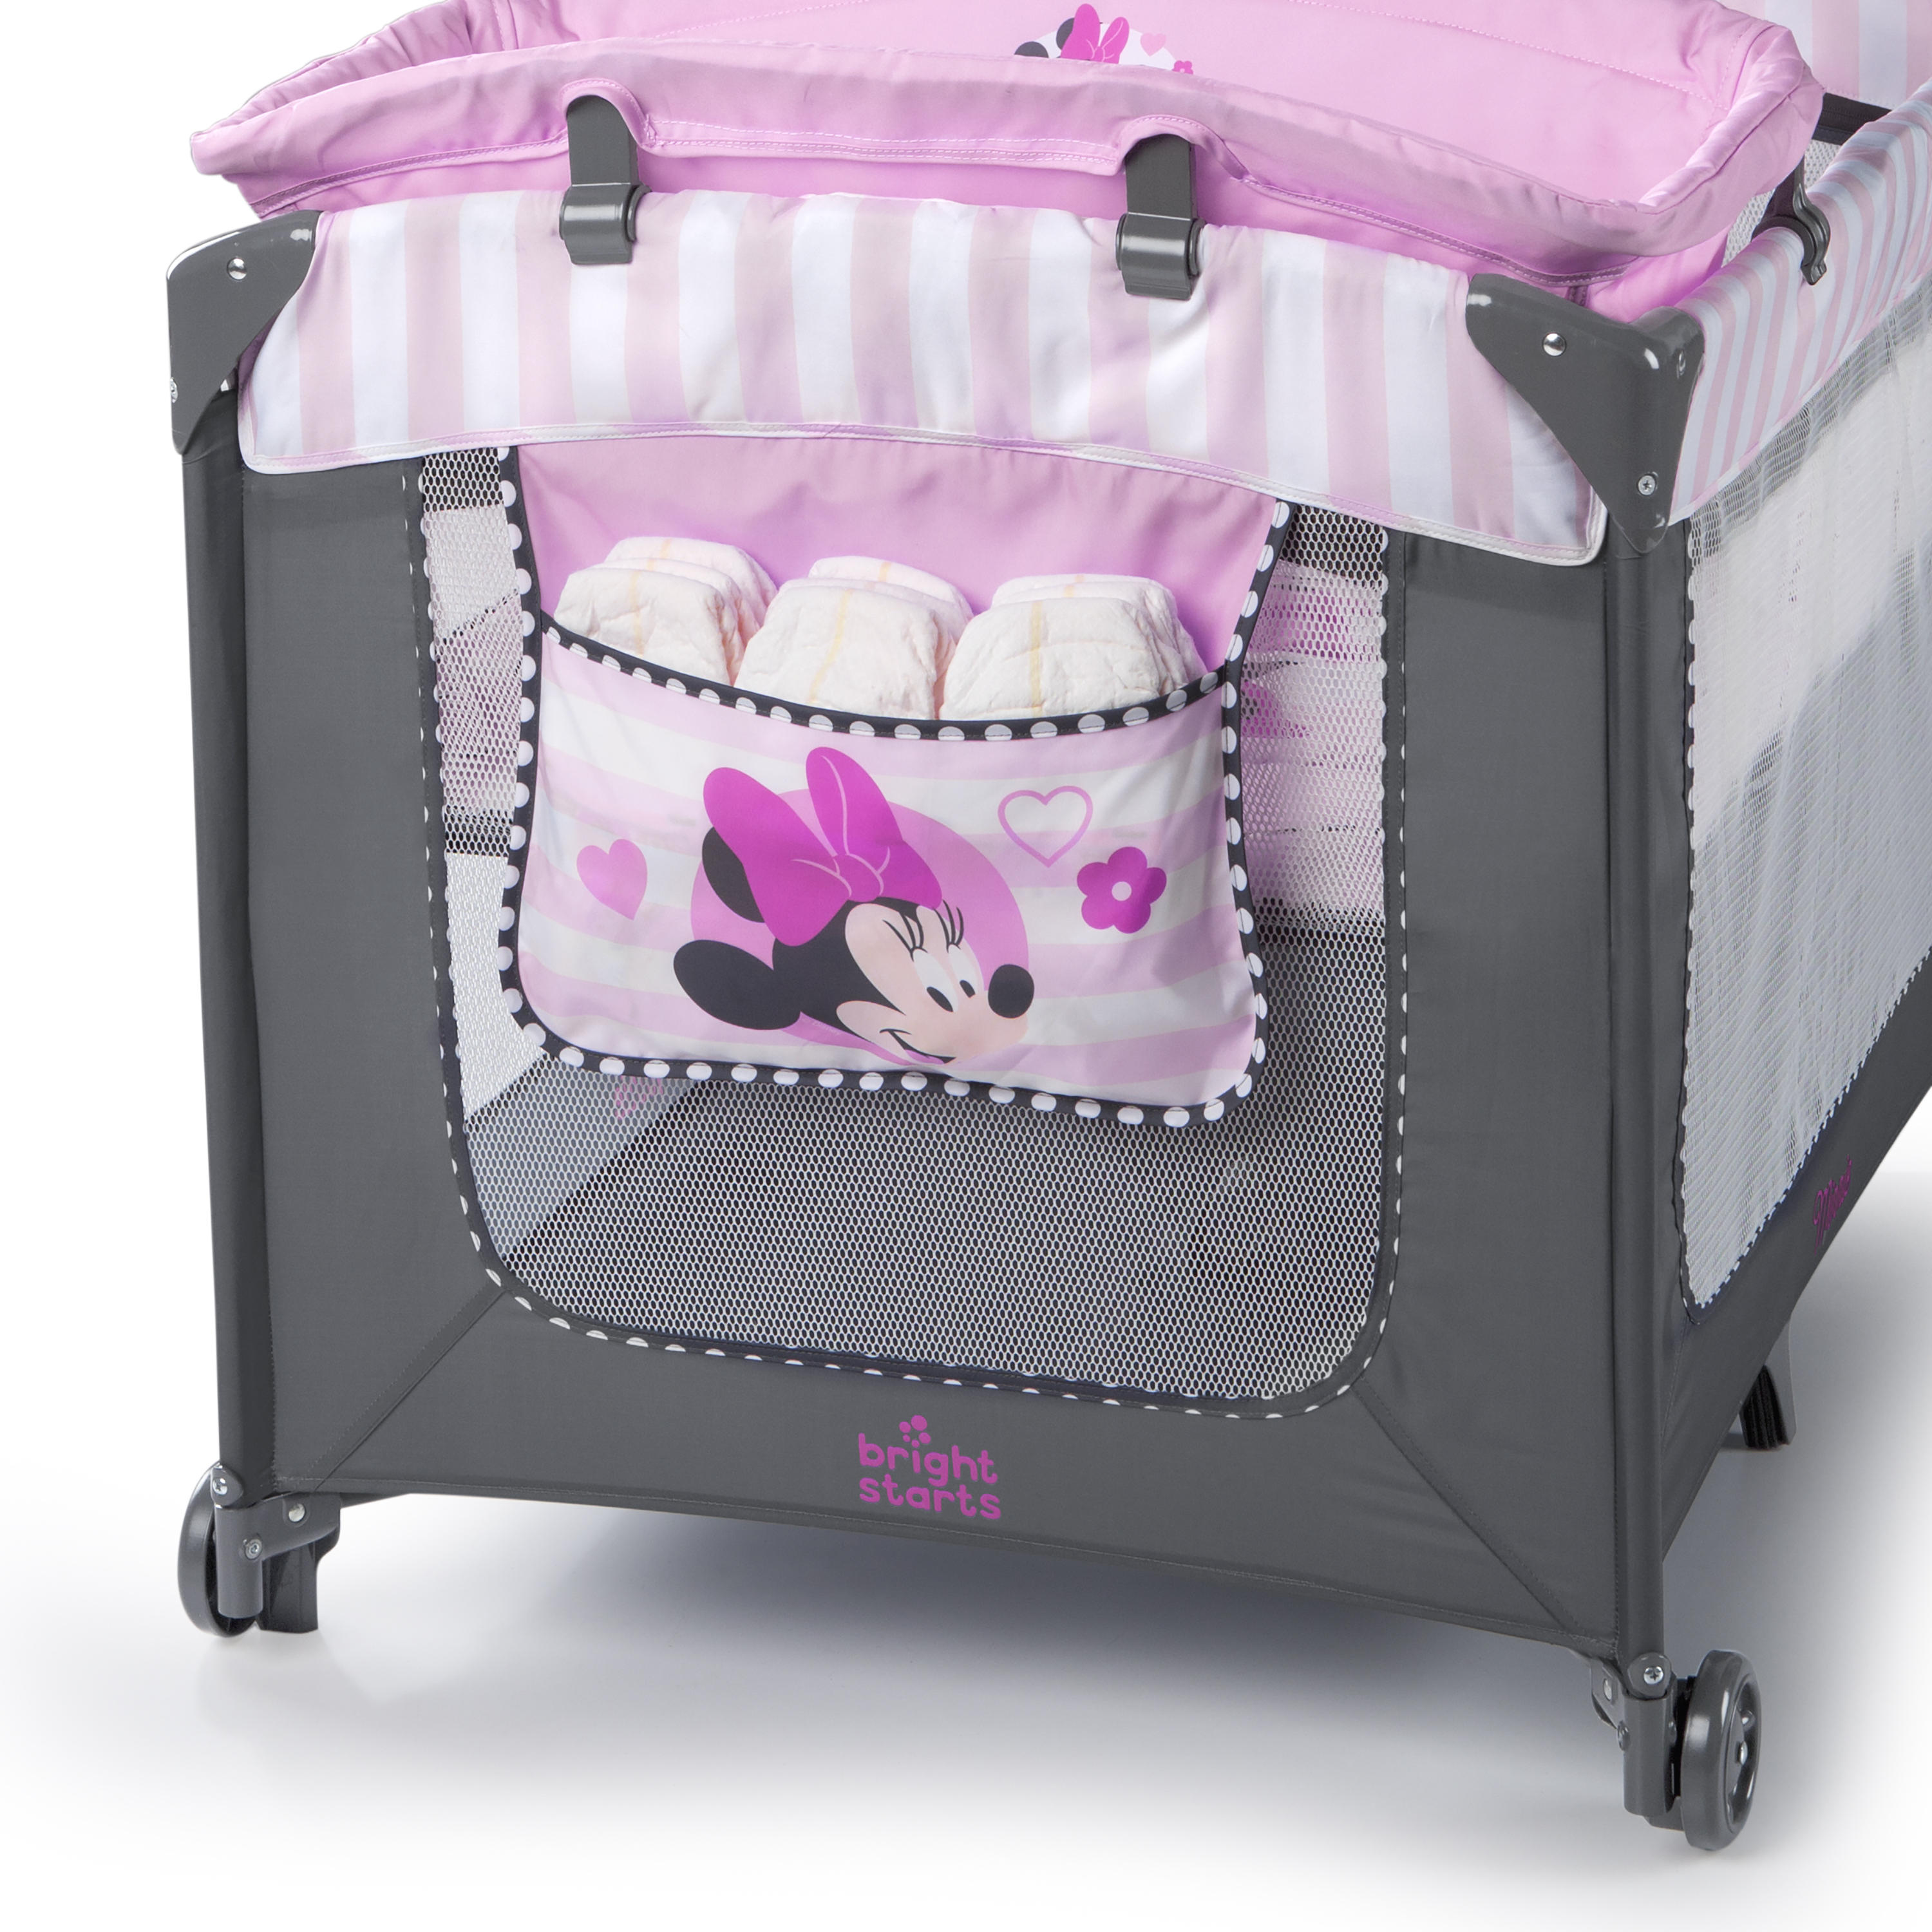 Minnie Mouse Blushing Bows Playard